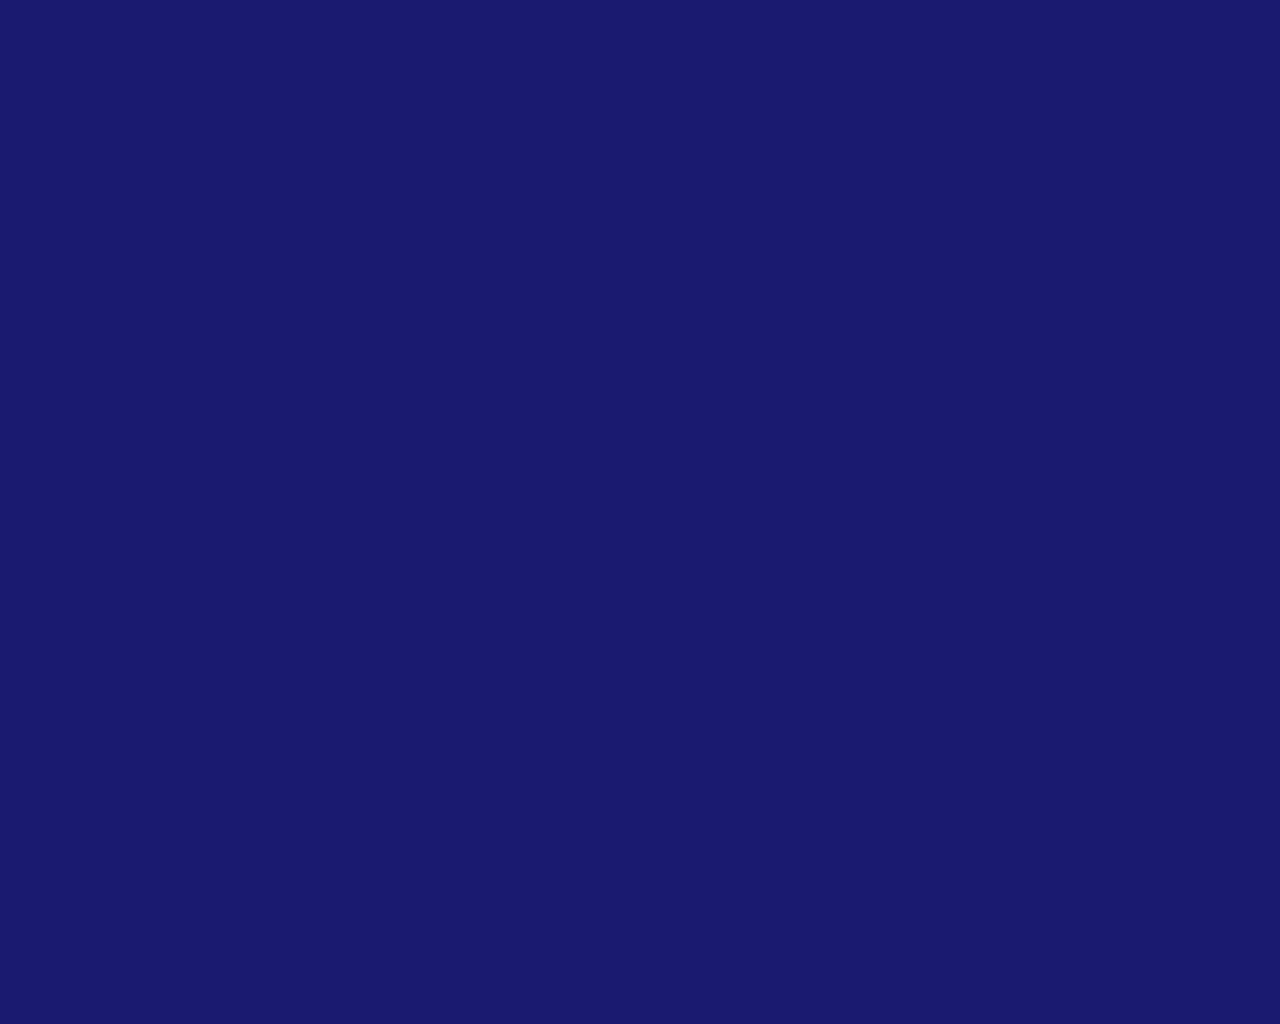 1280x1024 Midnight Blue Solid Color Background